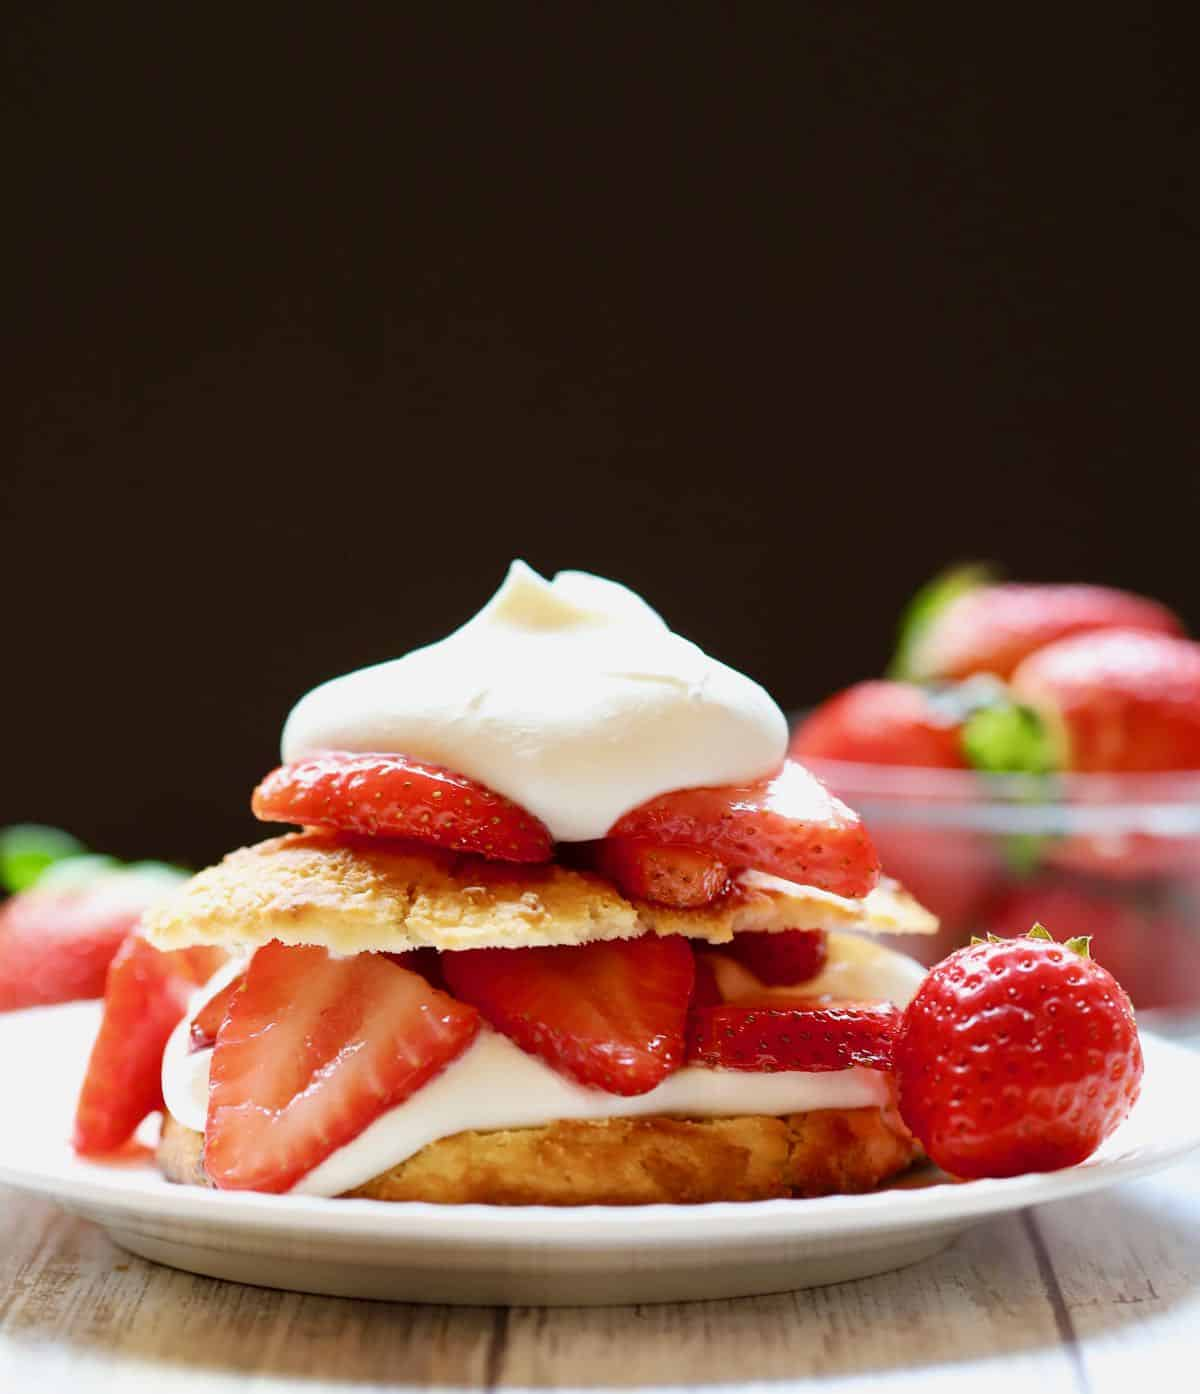 Strawberry shortcake with sliced strawberries on a plate.